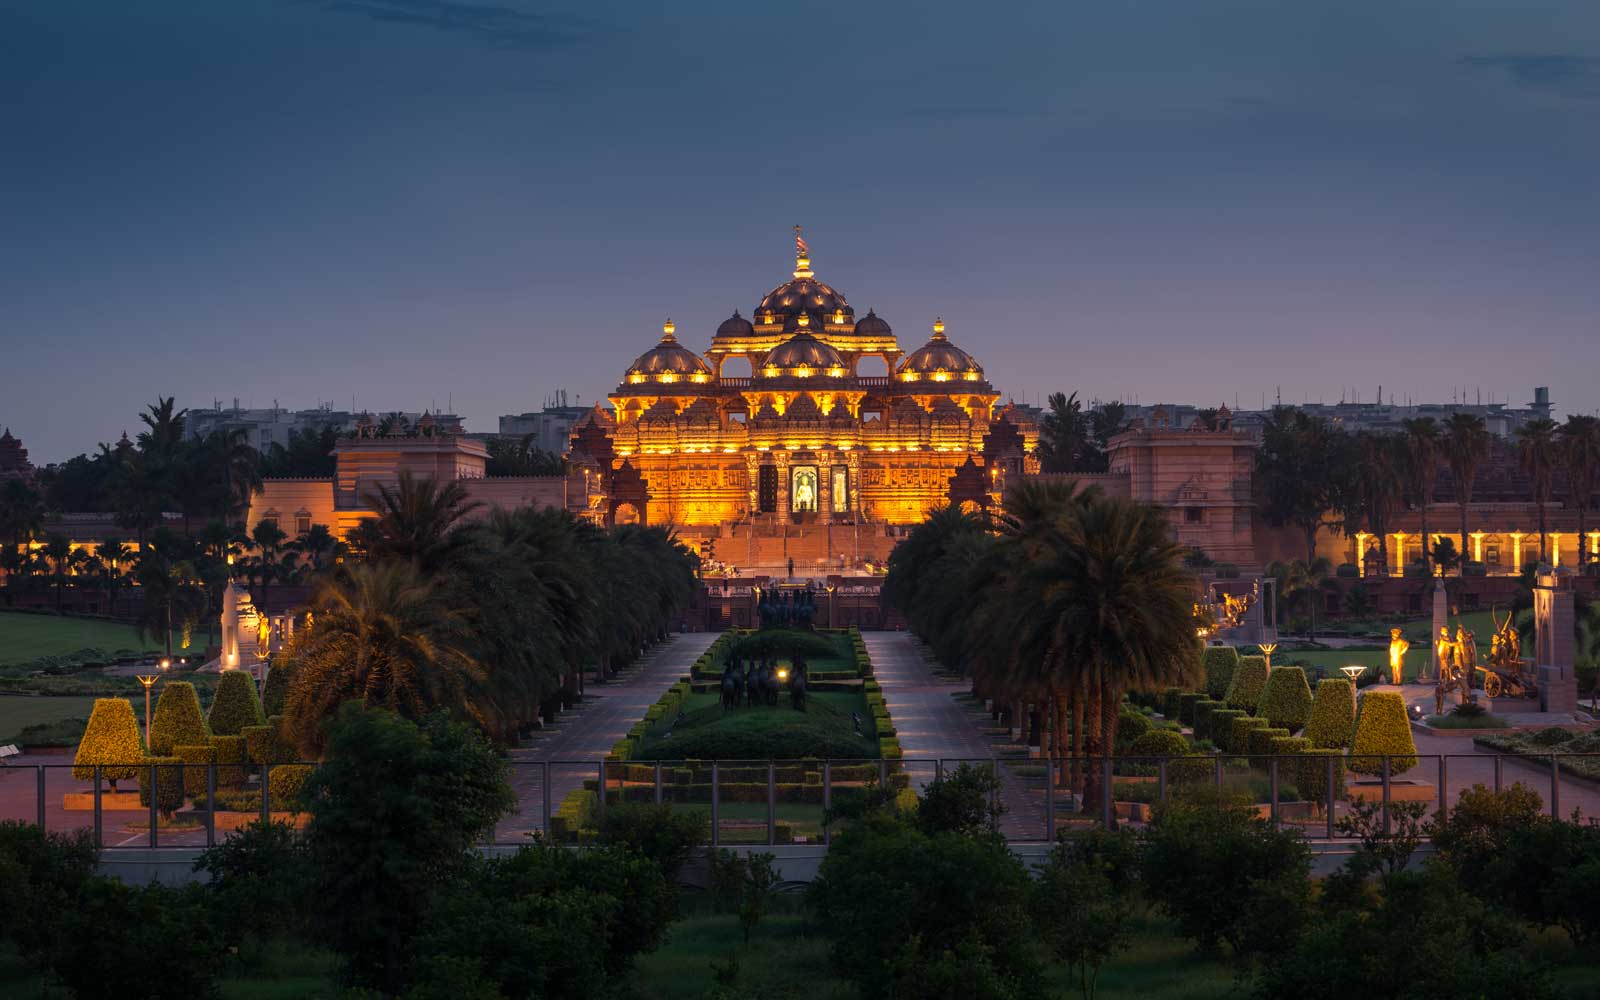 Take a trip to Delhi, India from the U.S. starting at $450 round-trip.